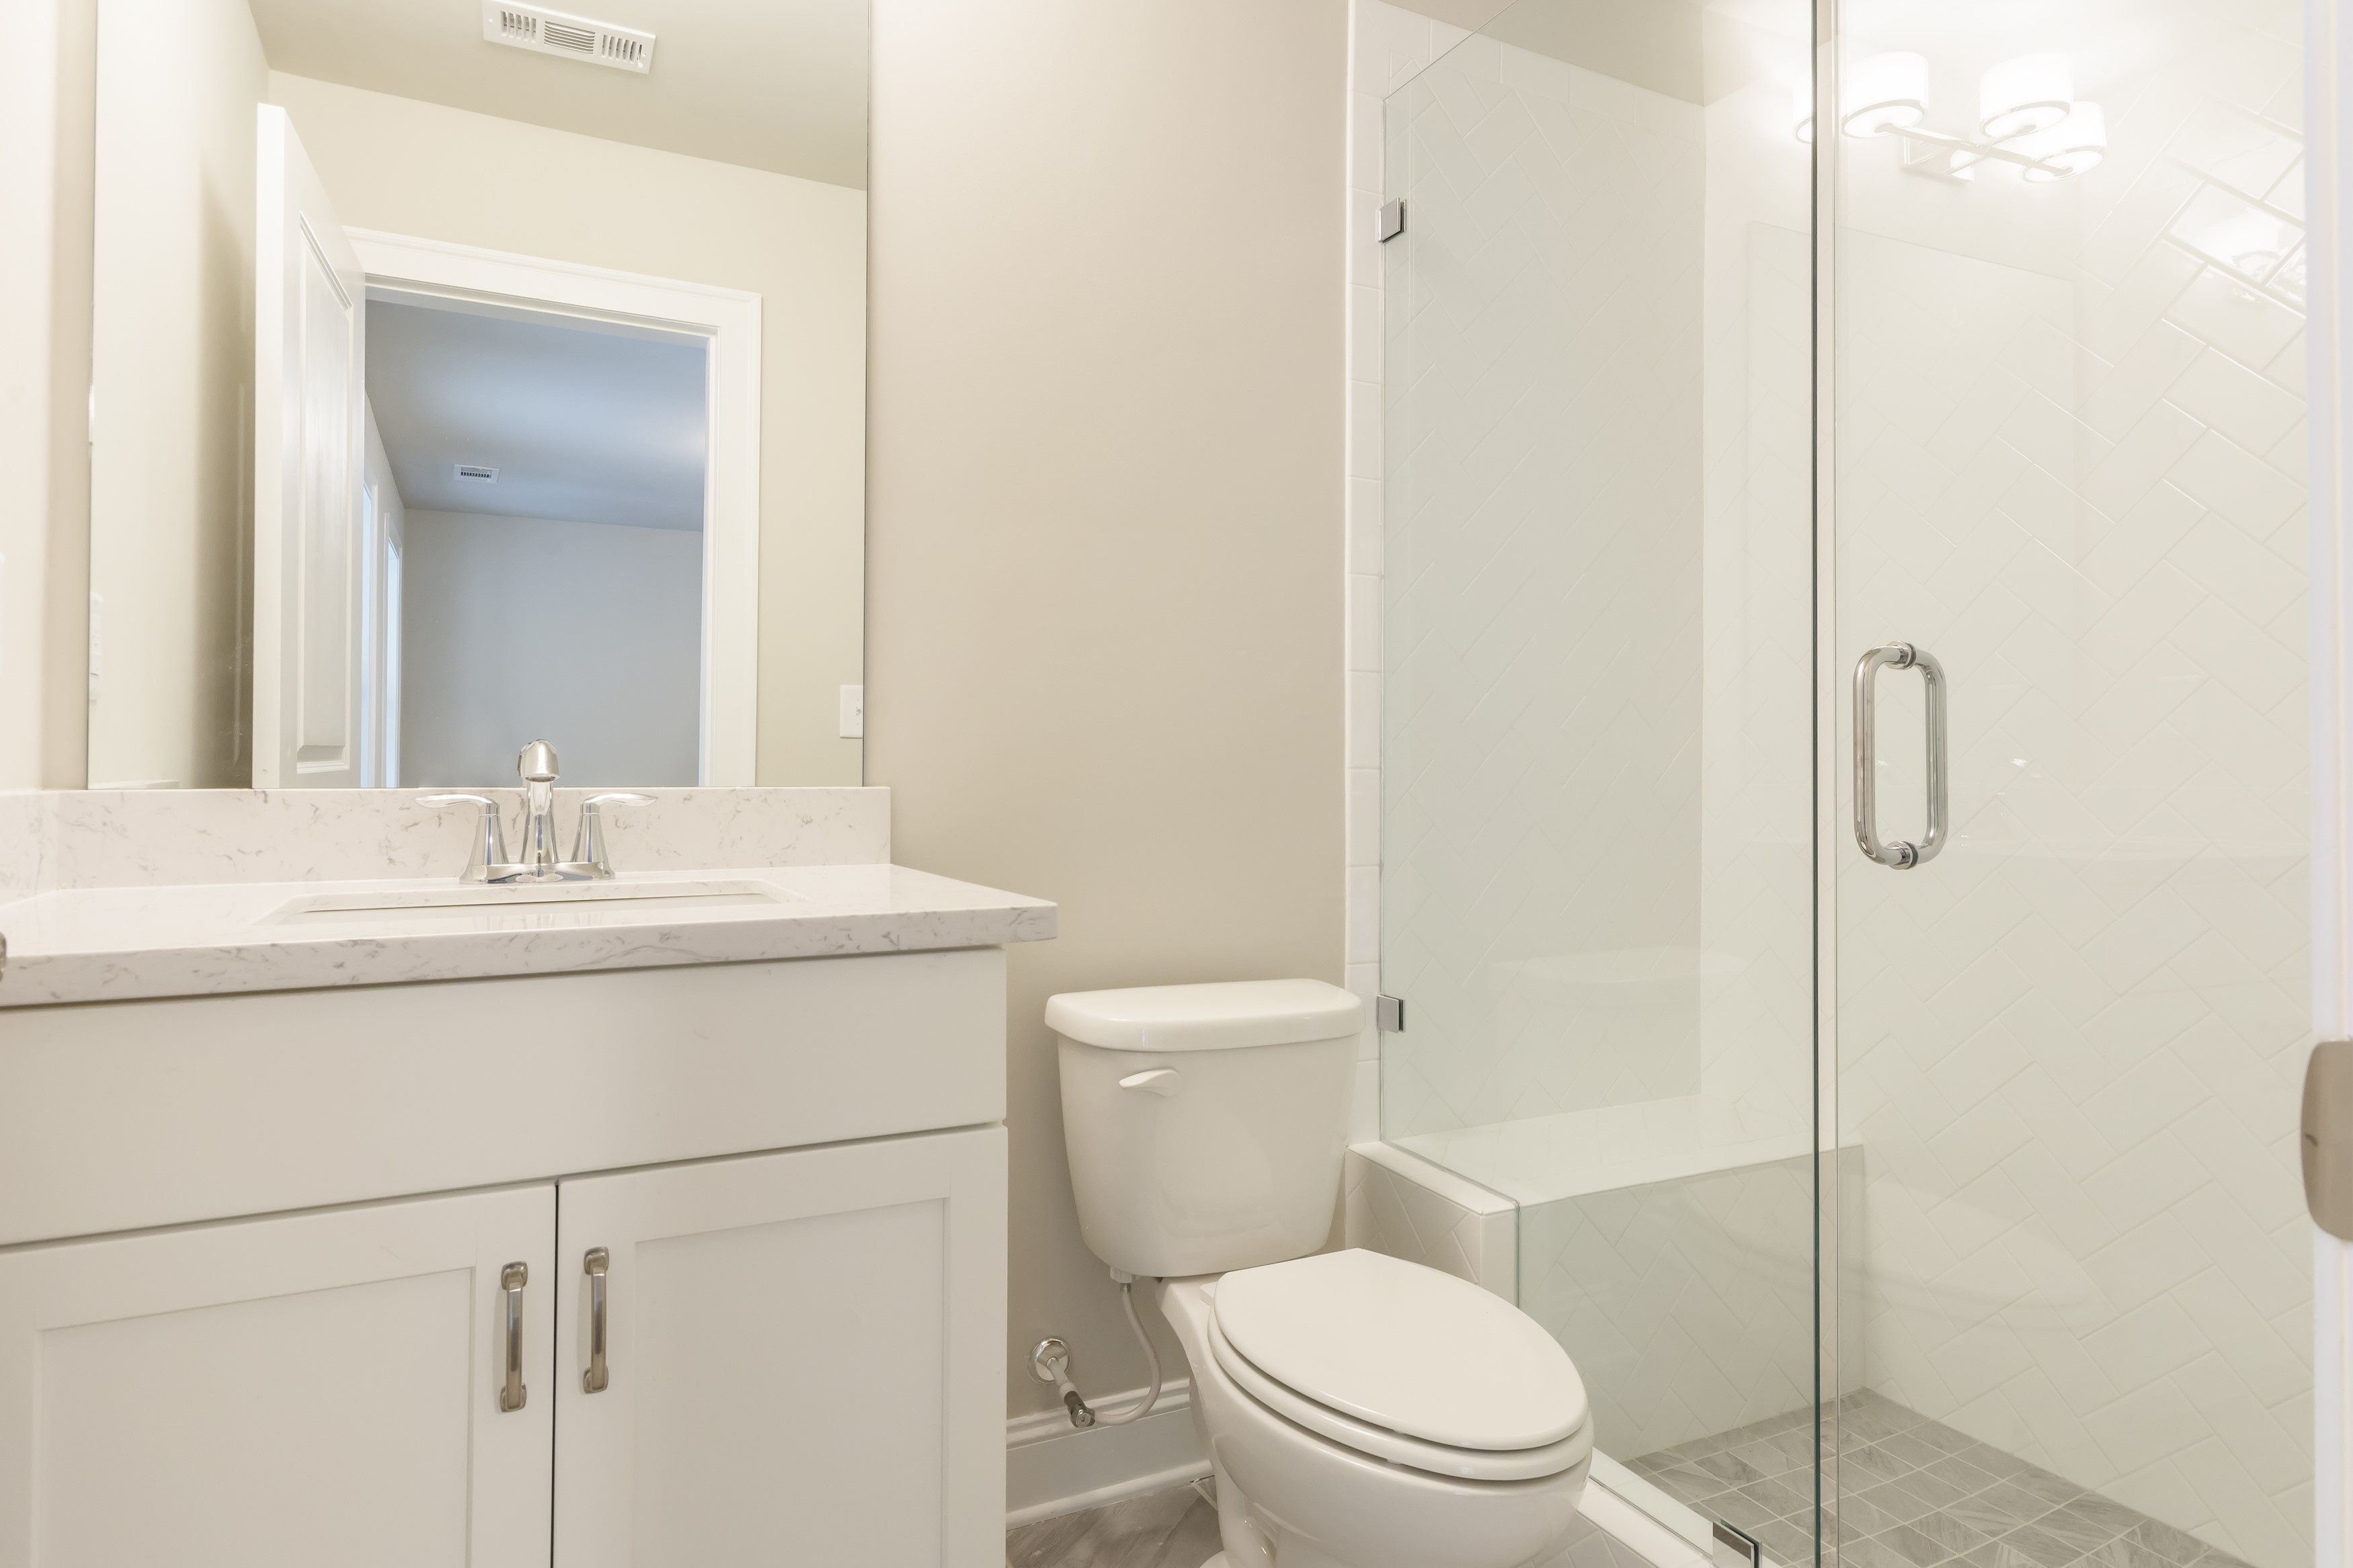 This Beautiful White Bathroom In Our Freemont Plan Features Wellborn Cabinets Glacier Piedrafina Carrera Marble Counters And Subway Tile